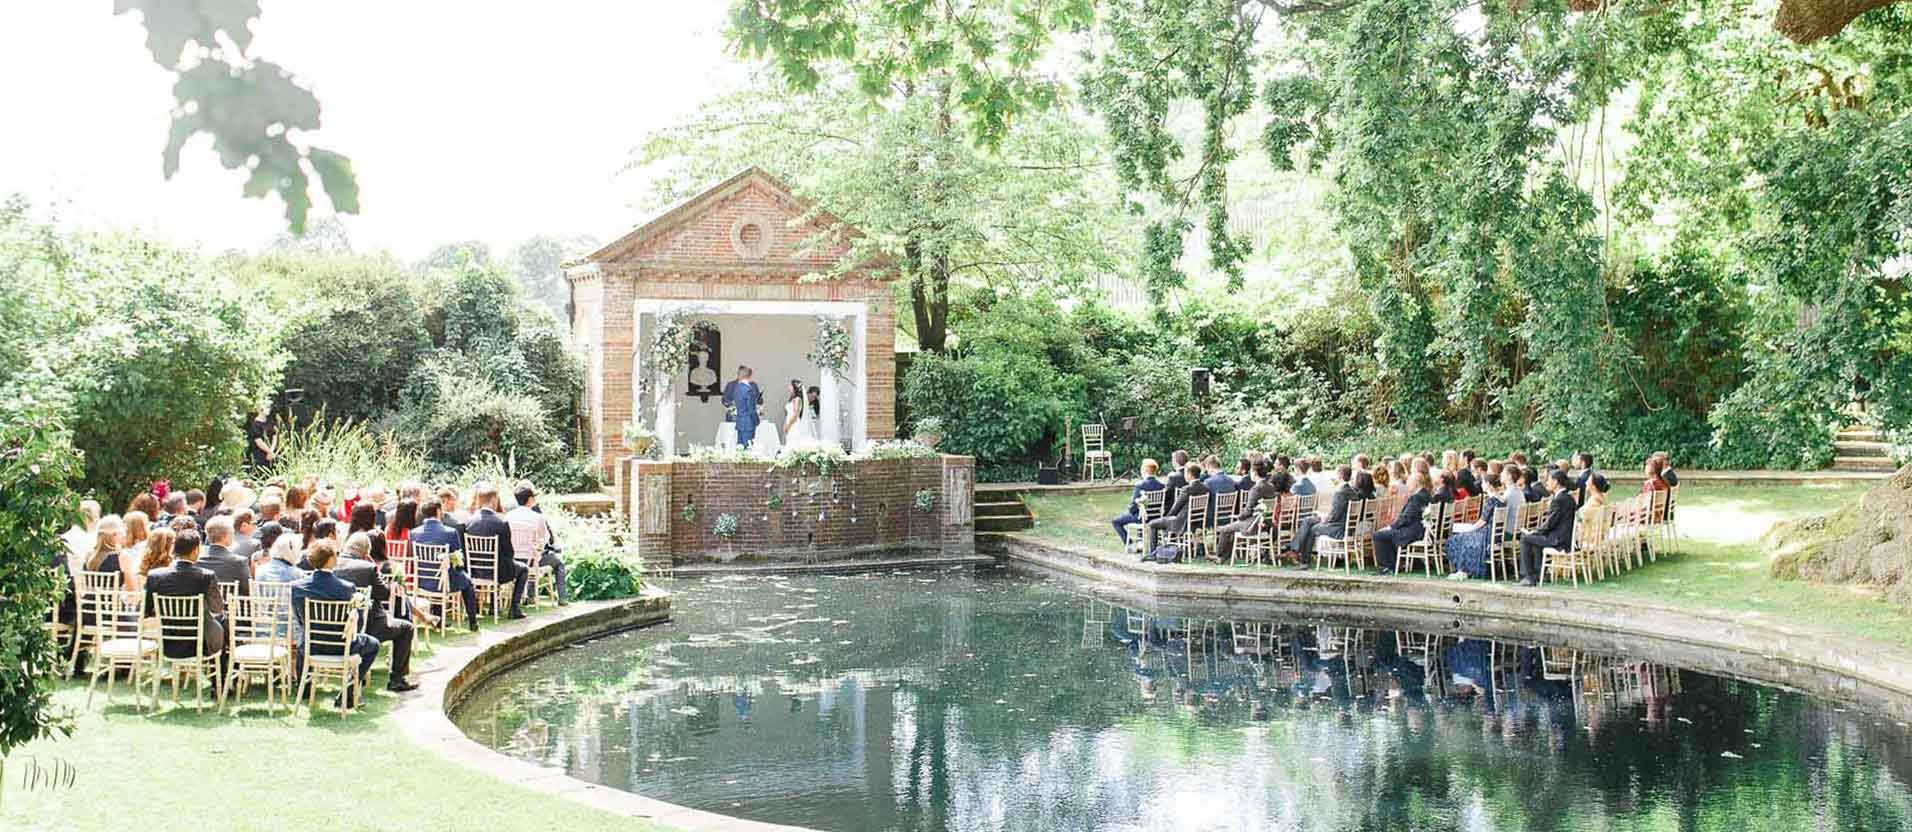 fine art wedding photography ceremony